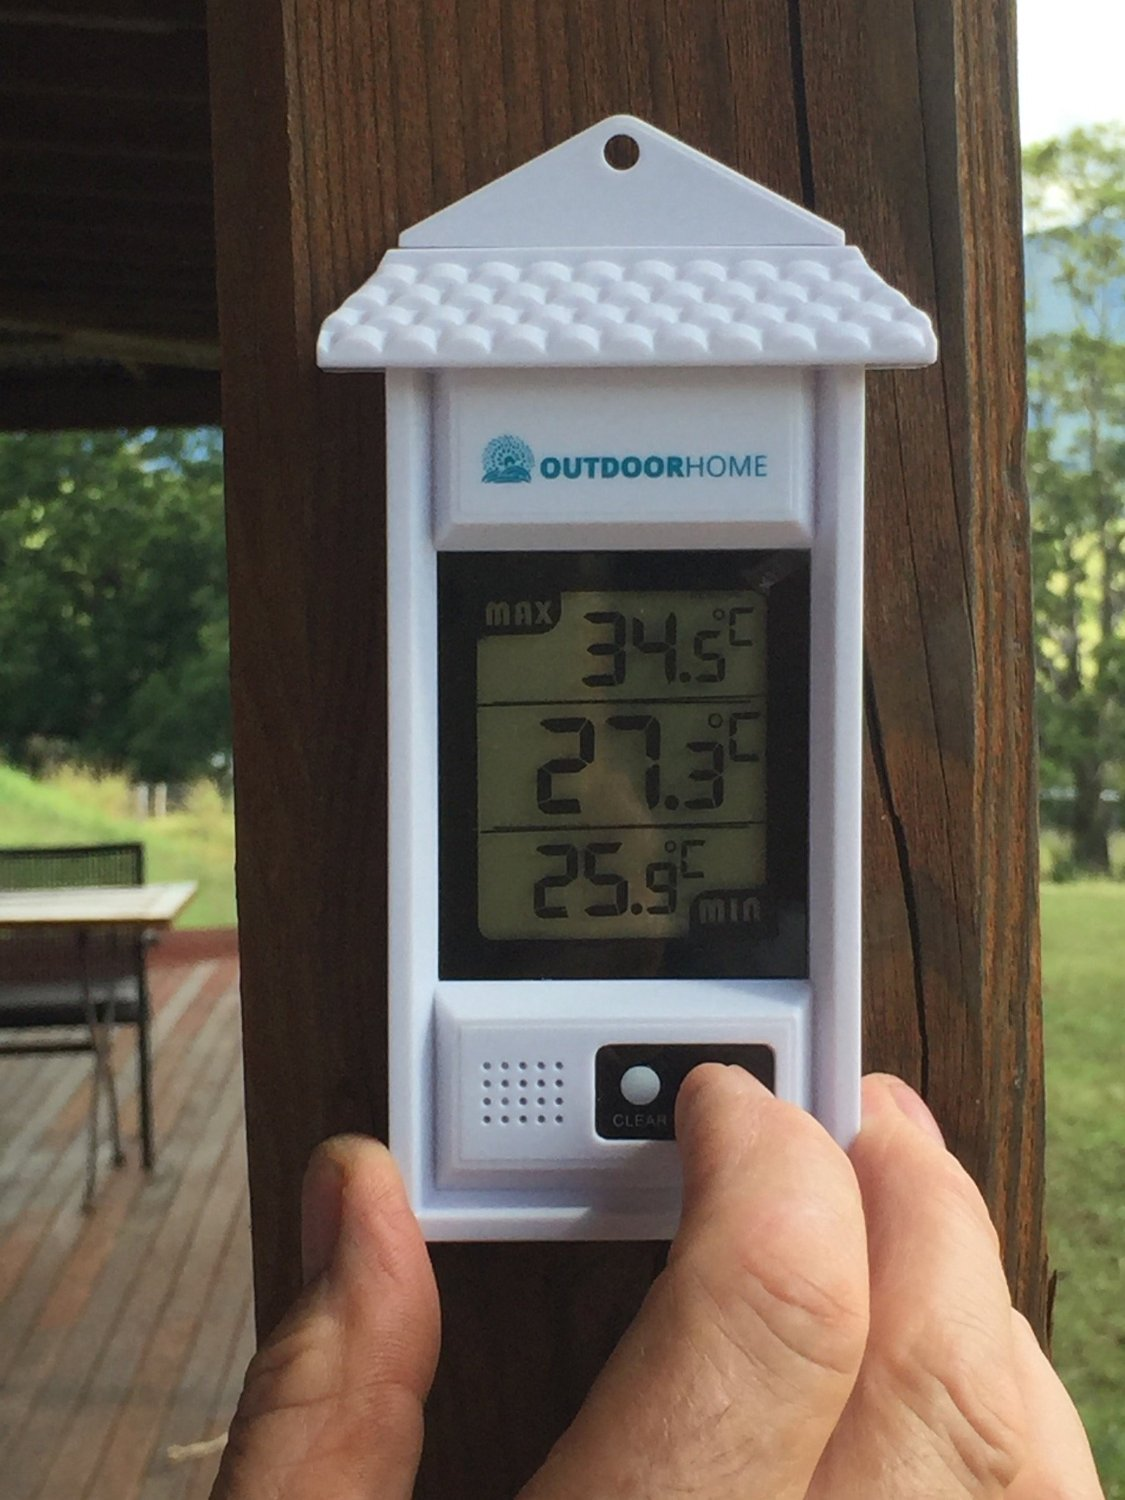 Digital Min Max Thermometer by Outdoor Home. Perfect for Garden, Patio or Greenhouse. Accurate Weather Thermometer with Current Temp & Auto Sensor for Min Max Readings Use Indoors Or Outdoors. by OutdoorHome (Image #5)